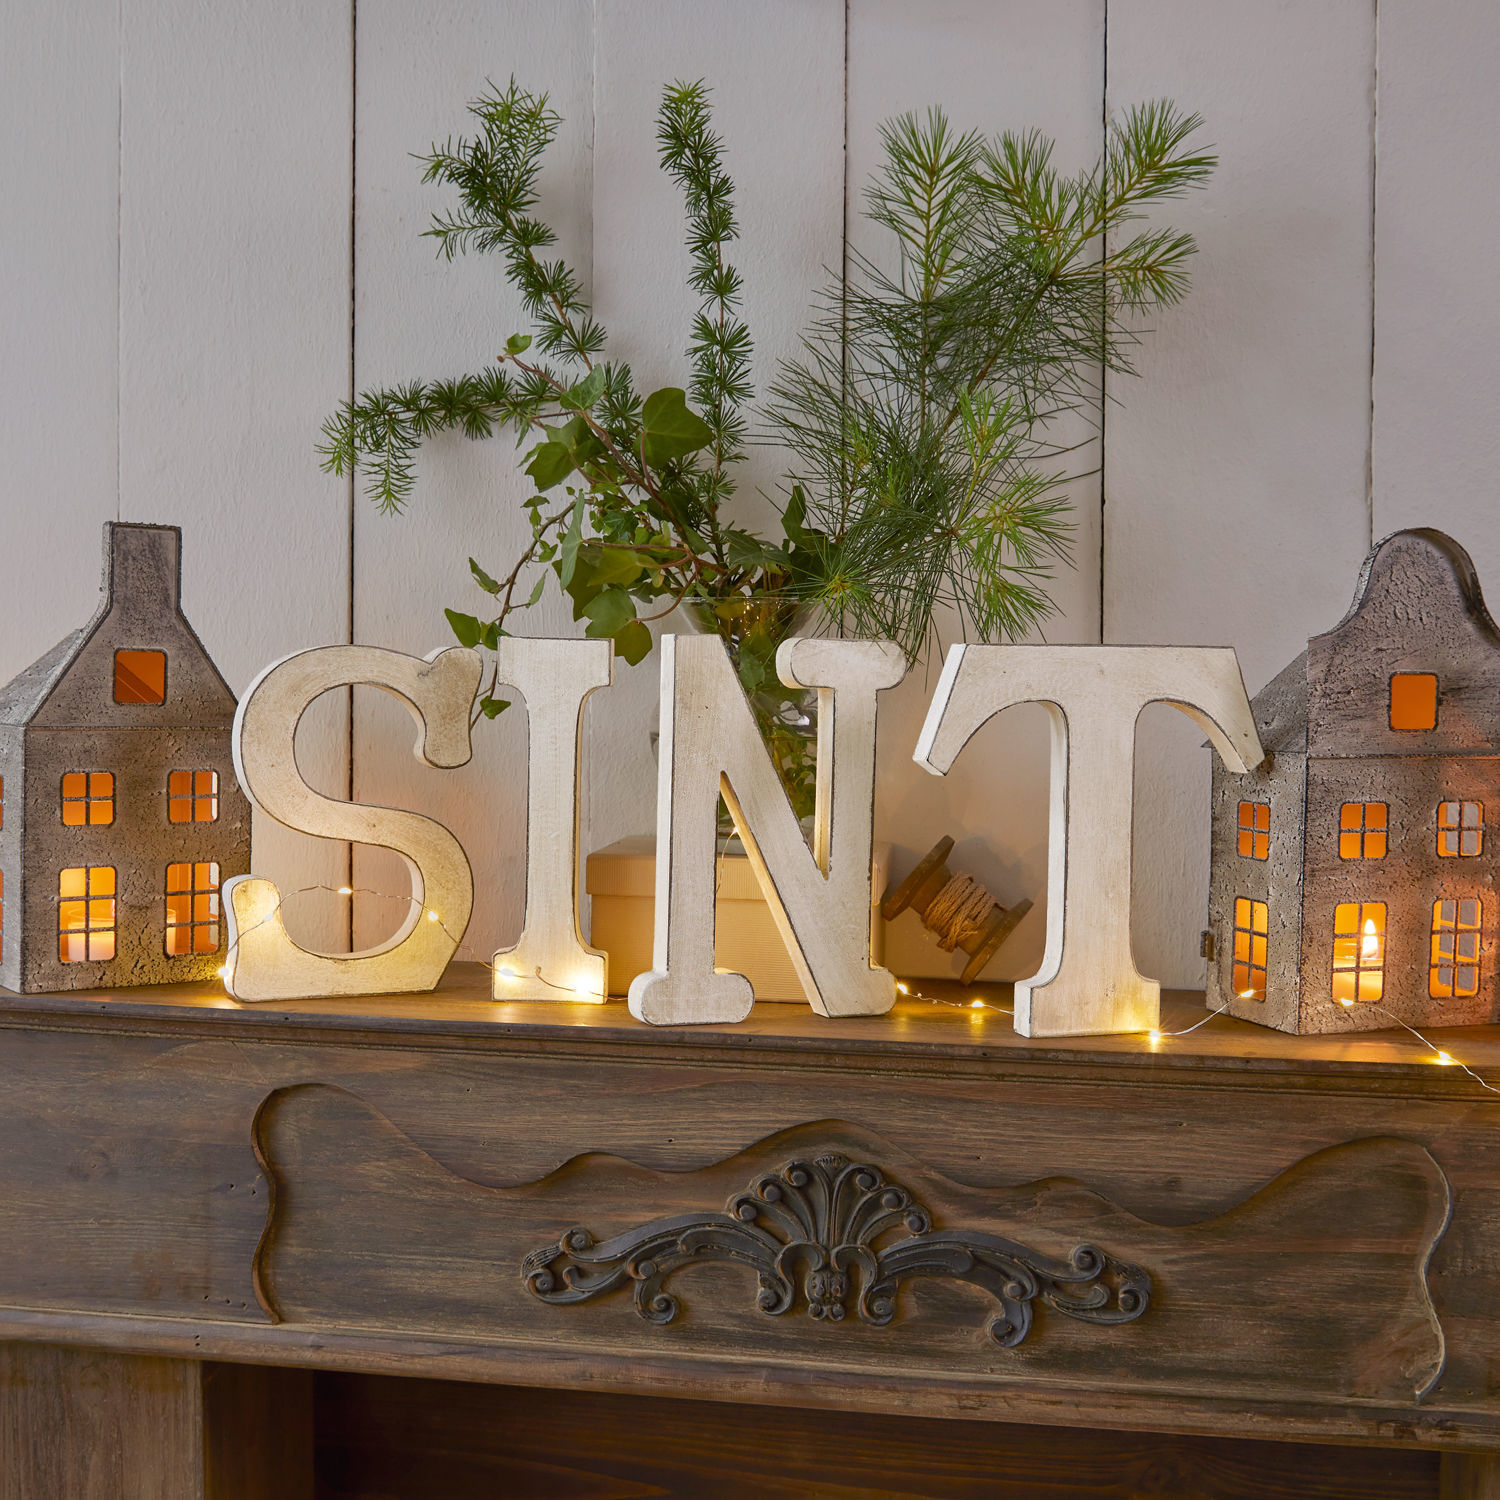 Decoratieletters Sint